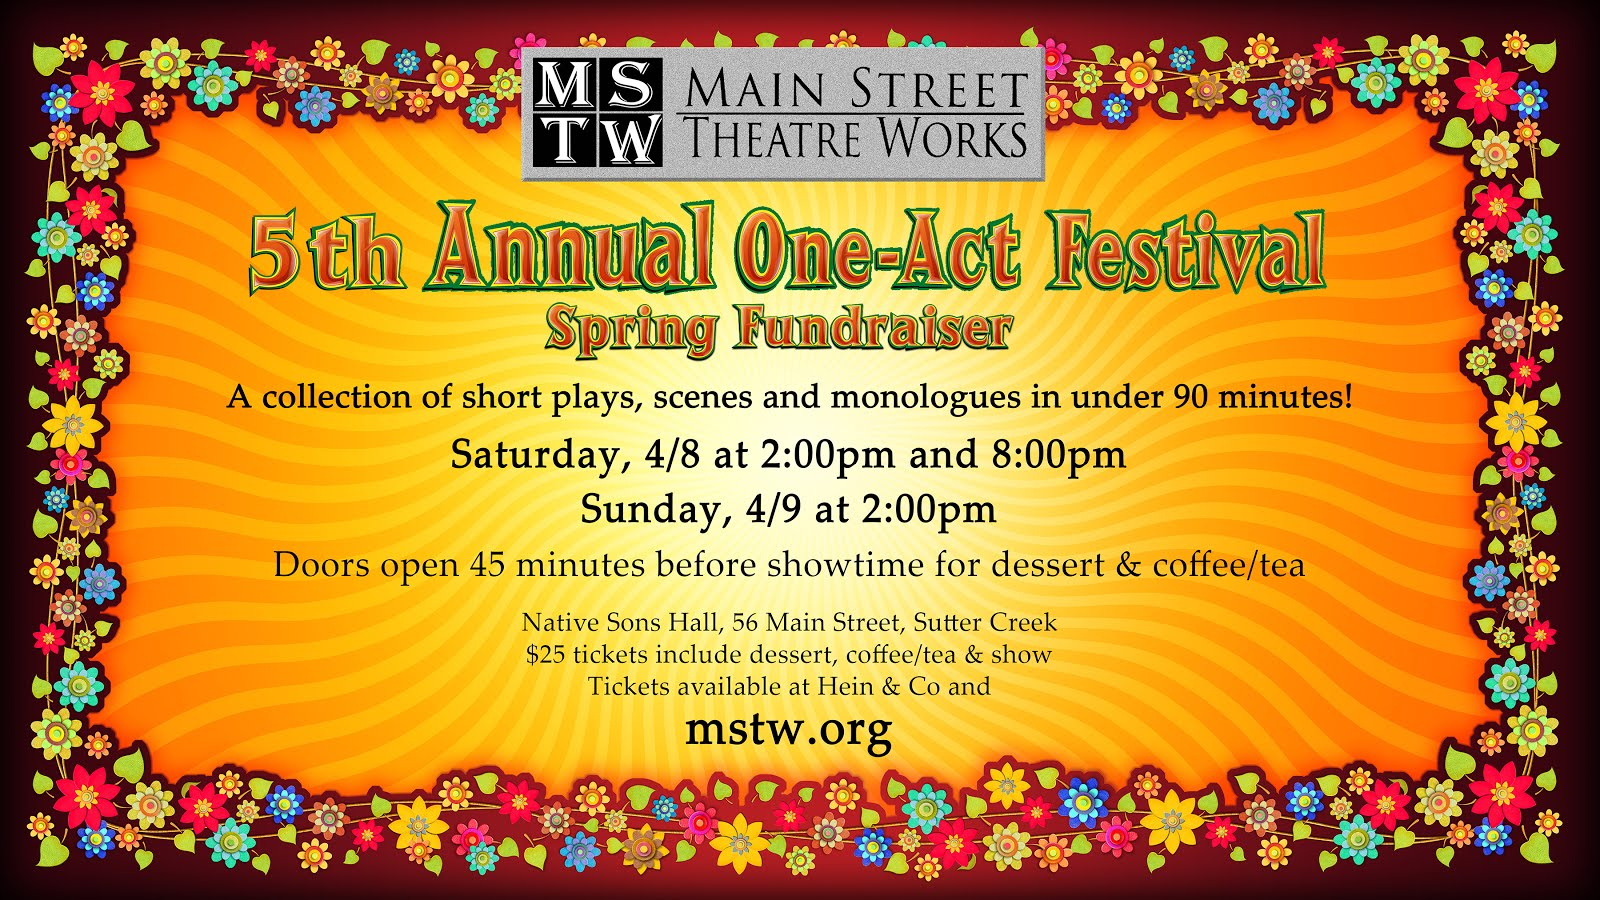 MSTW's 5th Annual One-Act Festival - April 8 & 9